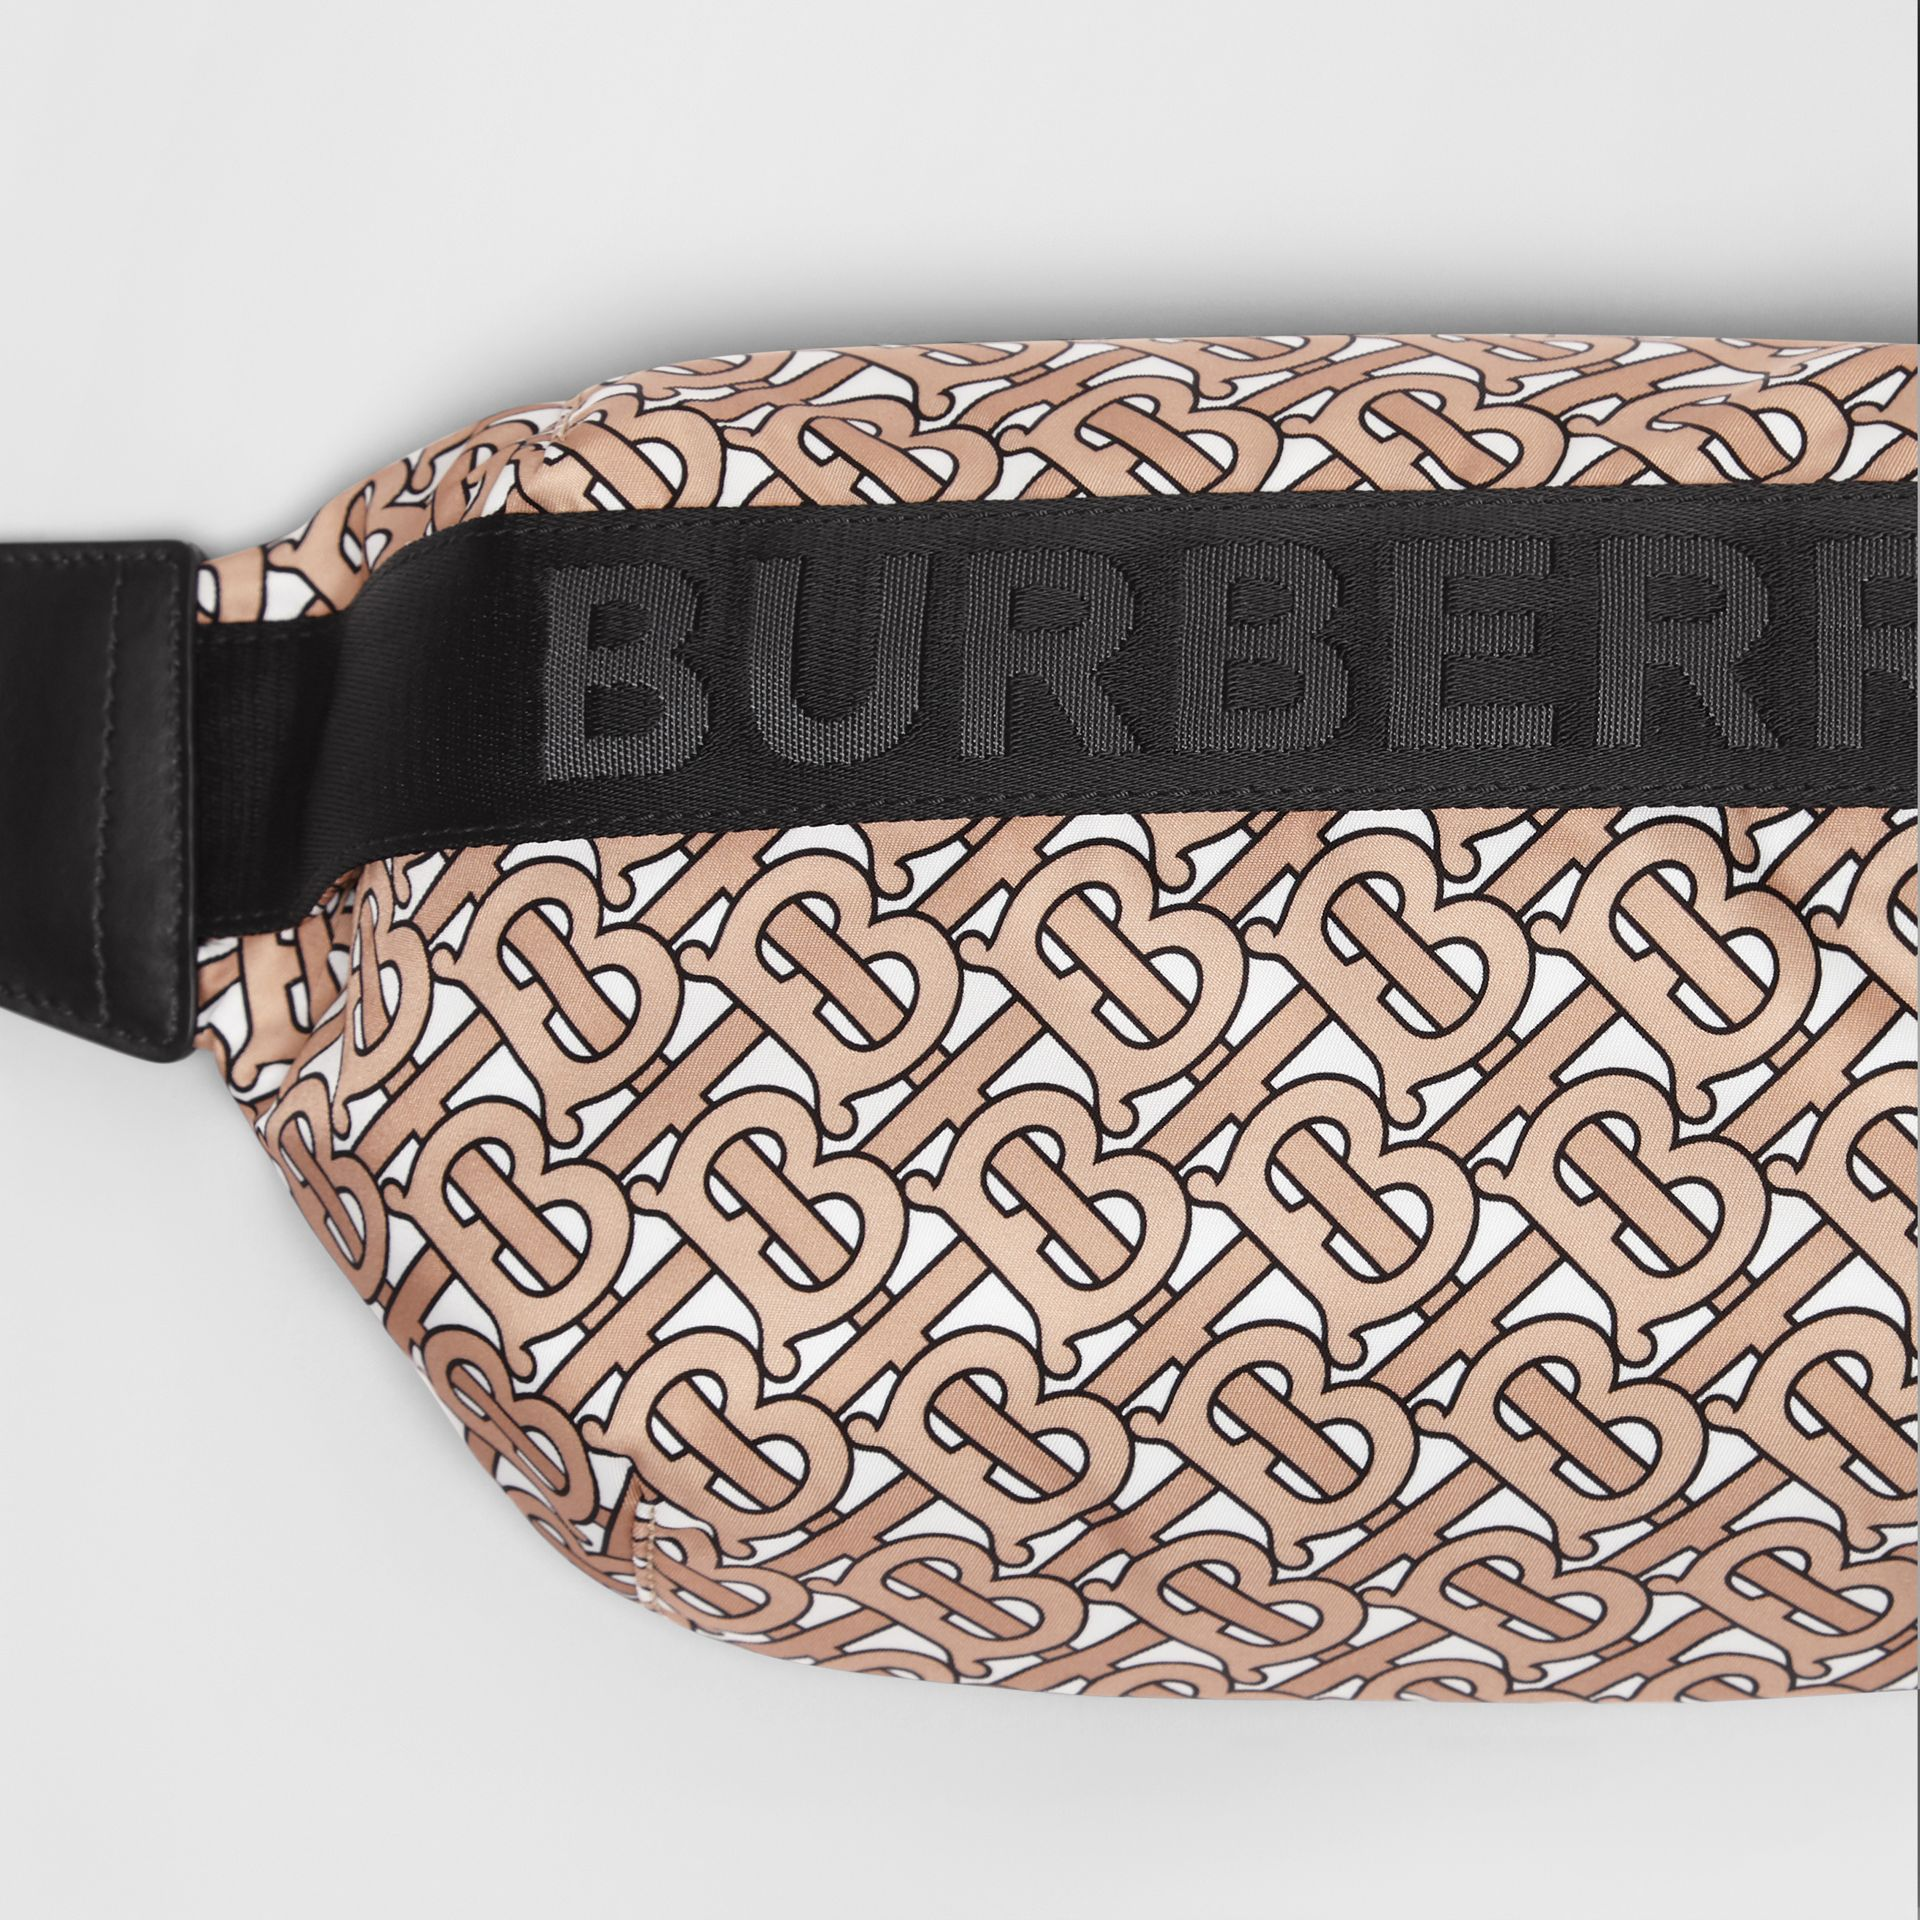 Medium Monogram Print Bum Bag in Beige | Burberry Australia - gallery image 1